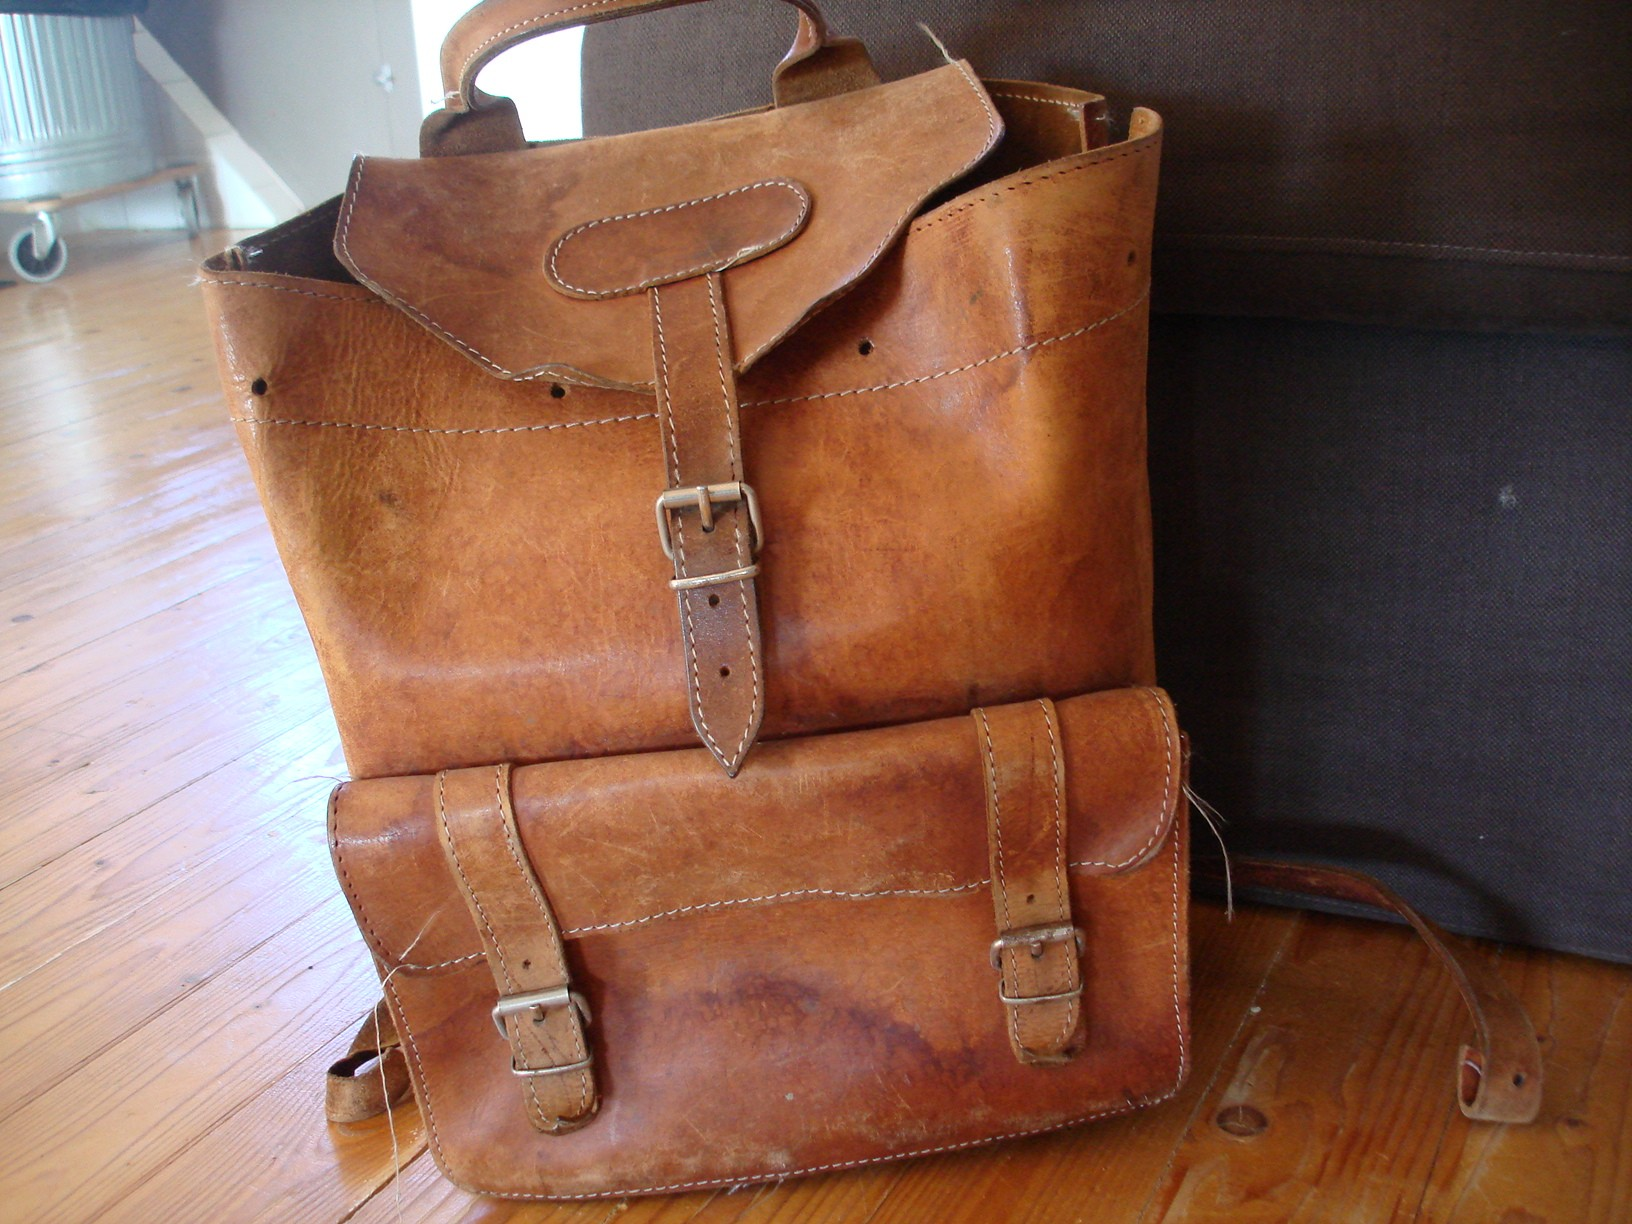 Vintage Leather Backpacks 6HQlbGn4